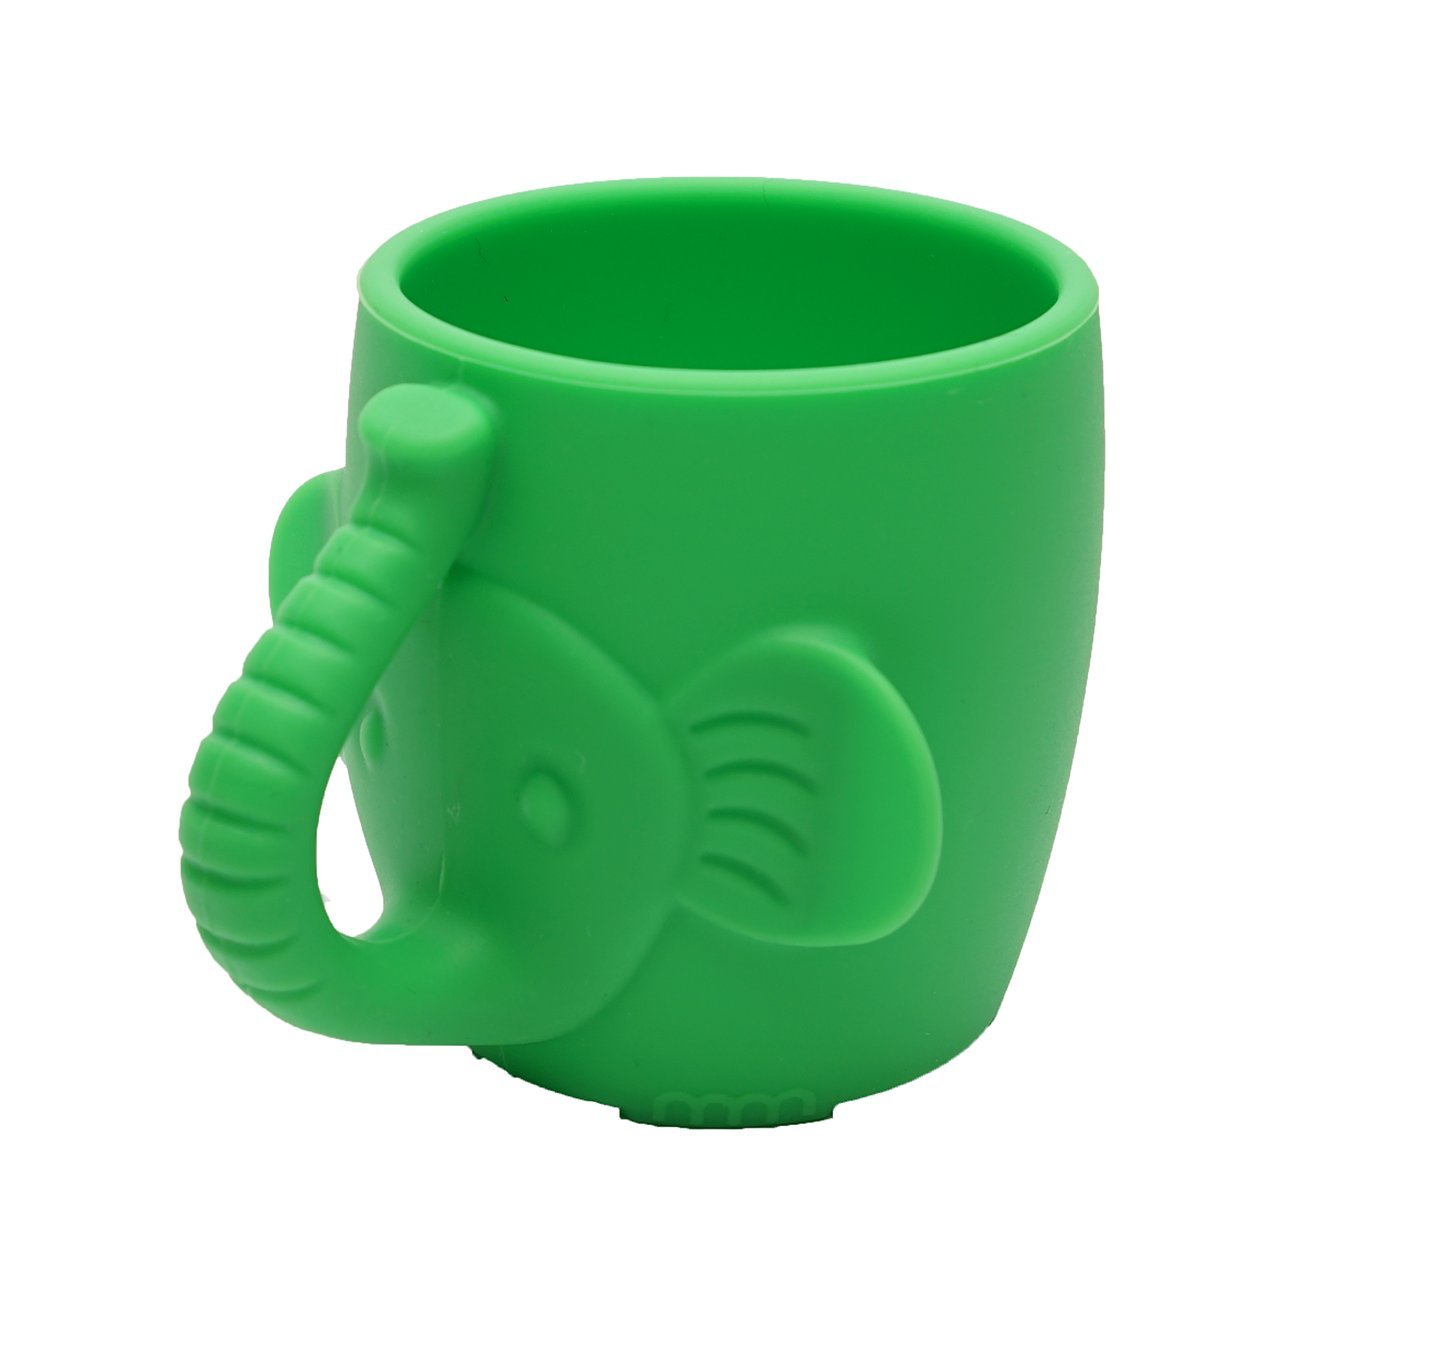 Baby Kid Sippy Cup Mug for Toddlers Learning Cup Elephant Design Great for Baby's Interaction Dexterity Silicone Bambini Bear 6 OZ Capacity